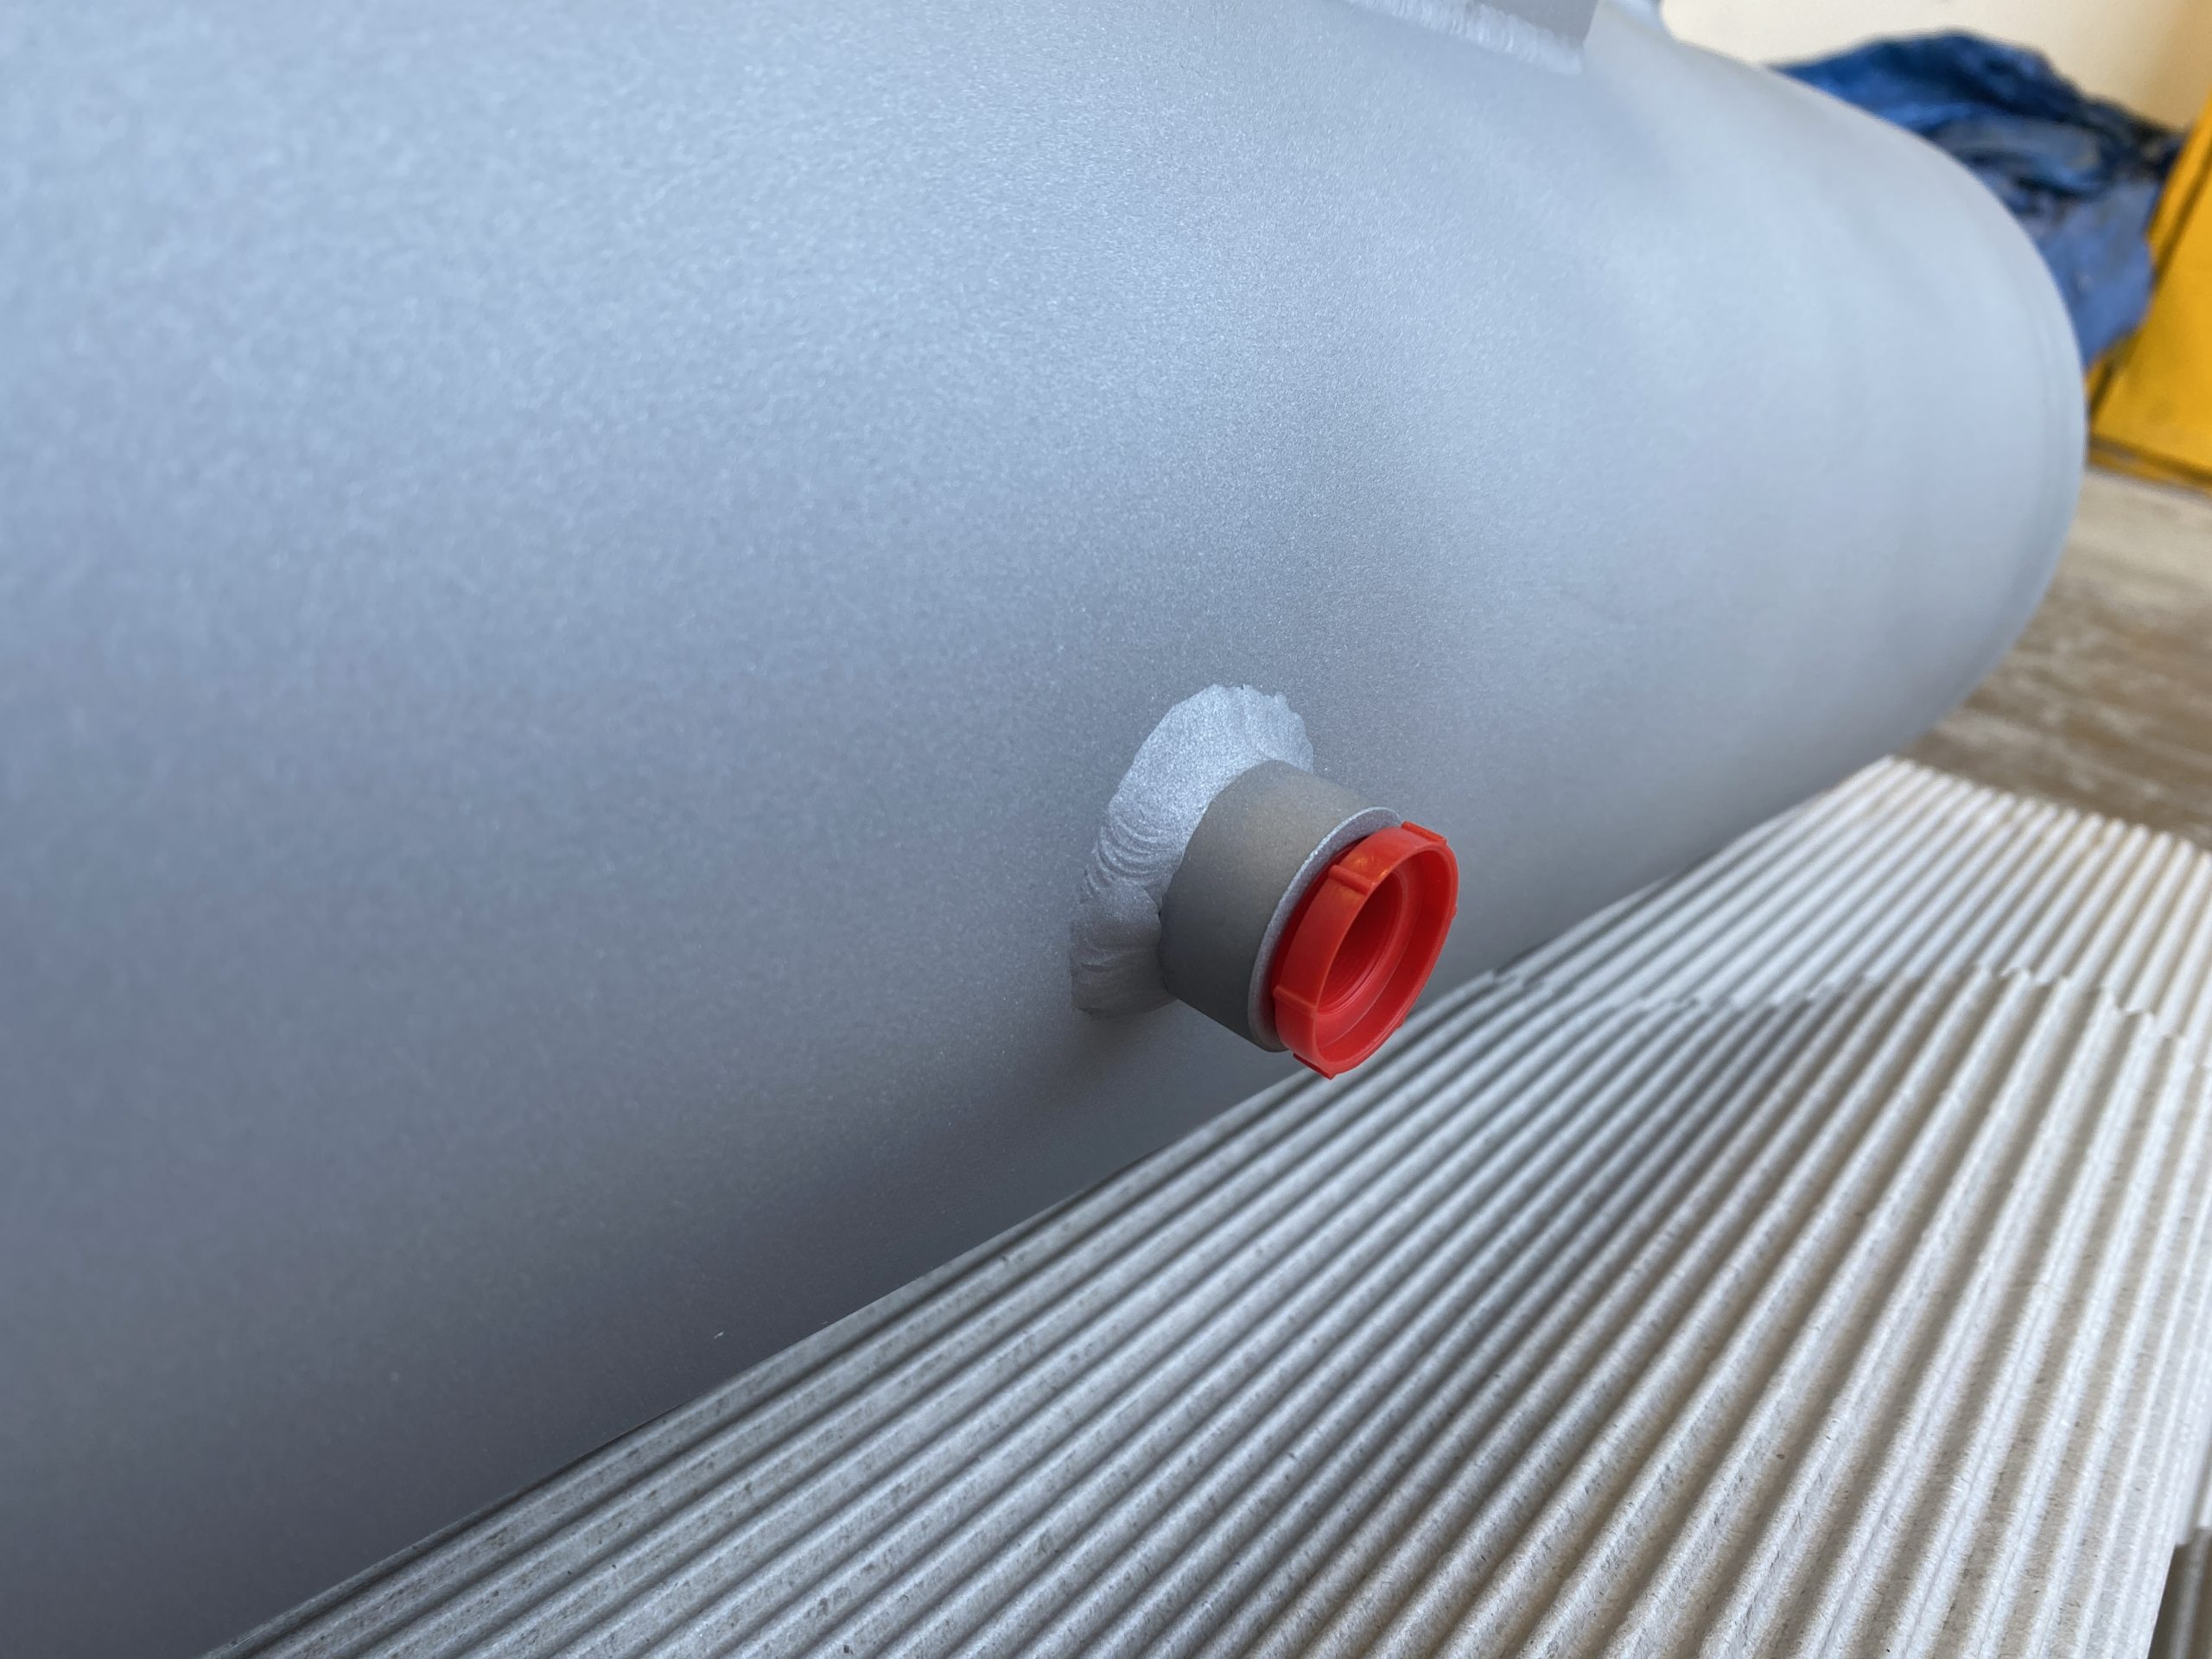 Hydrogen Pressure Buffer vessel made from stainless steel 316 for the clean energy industry